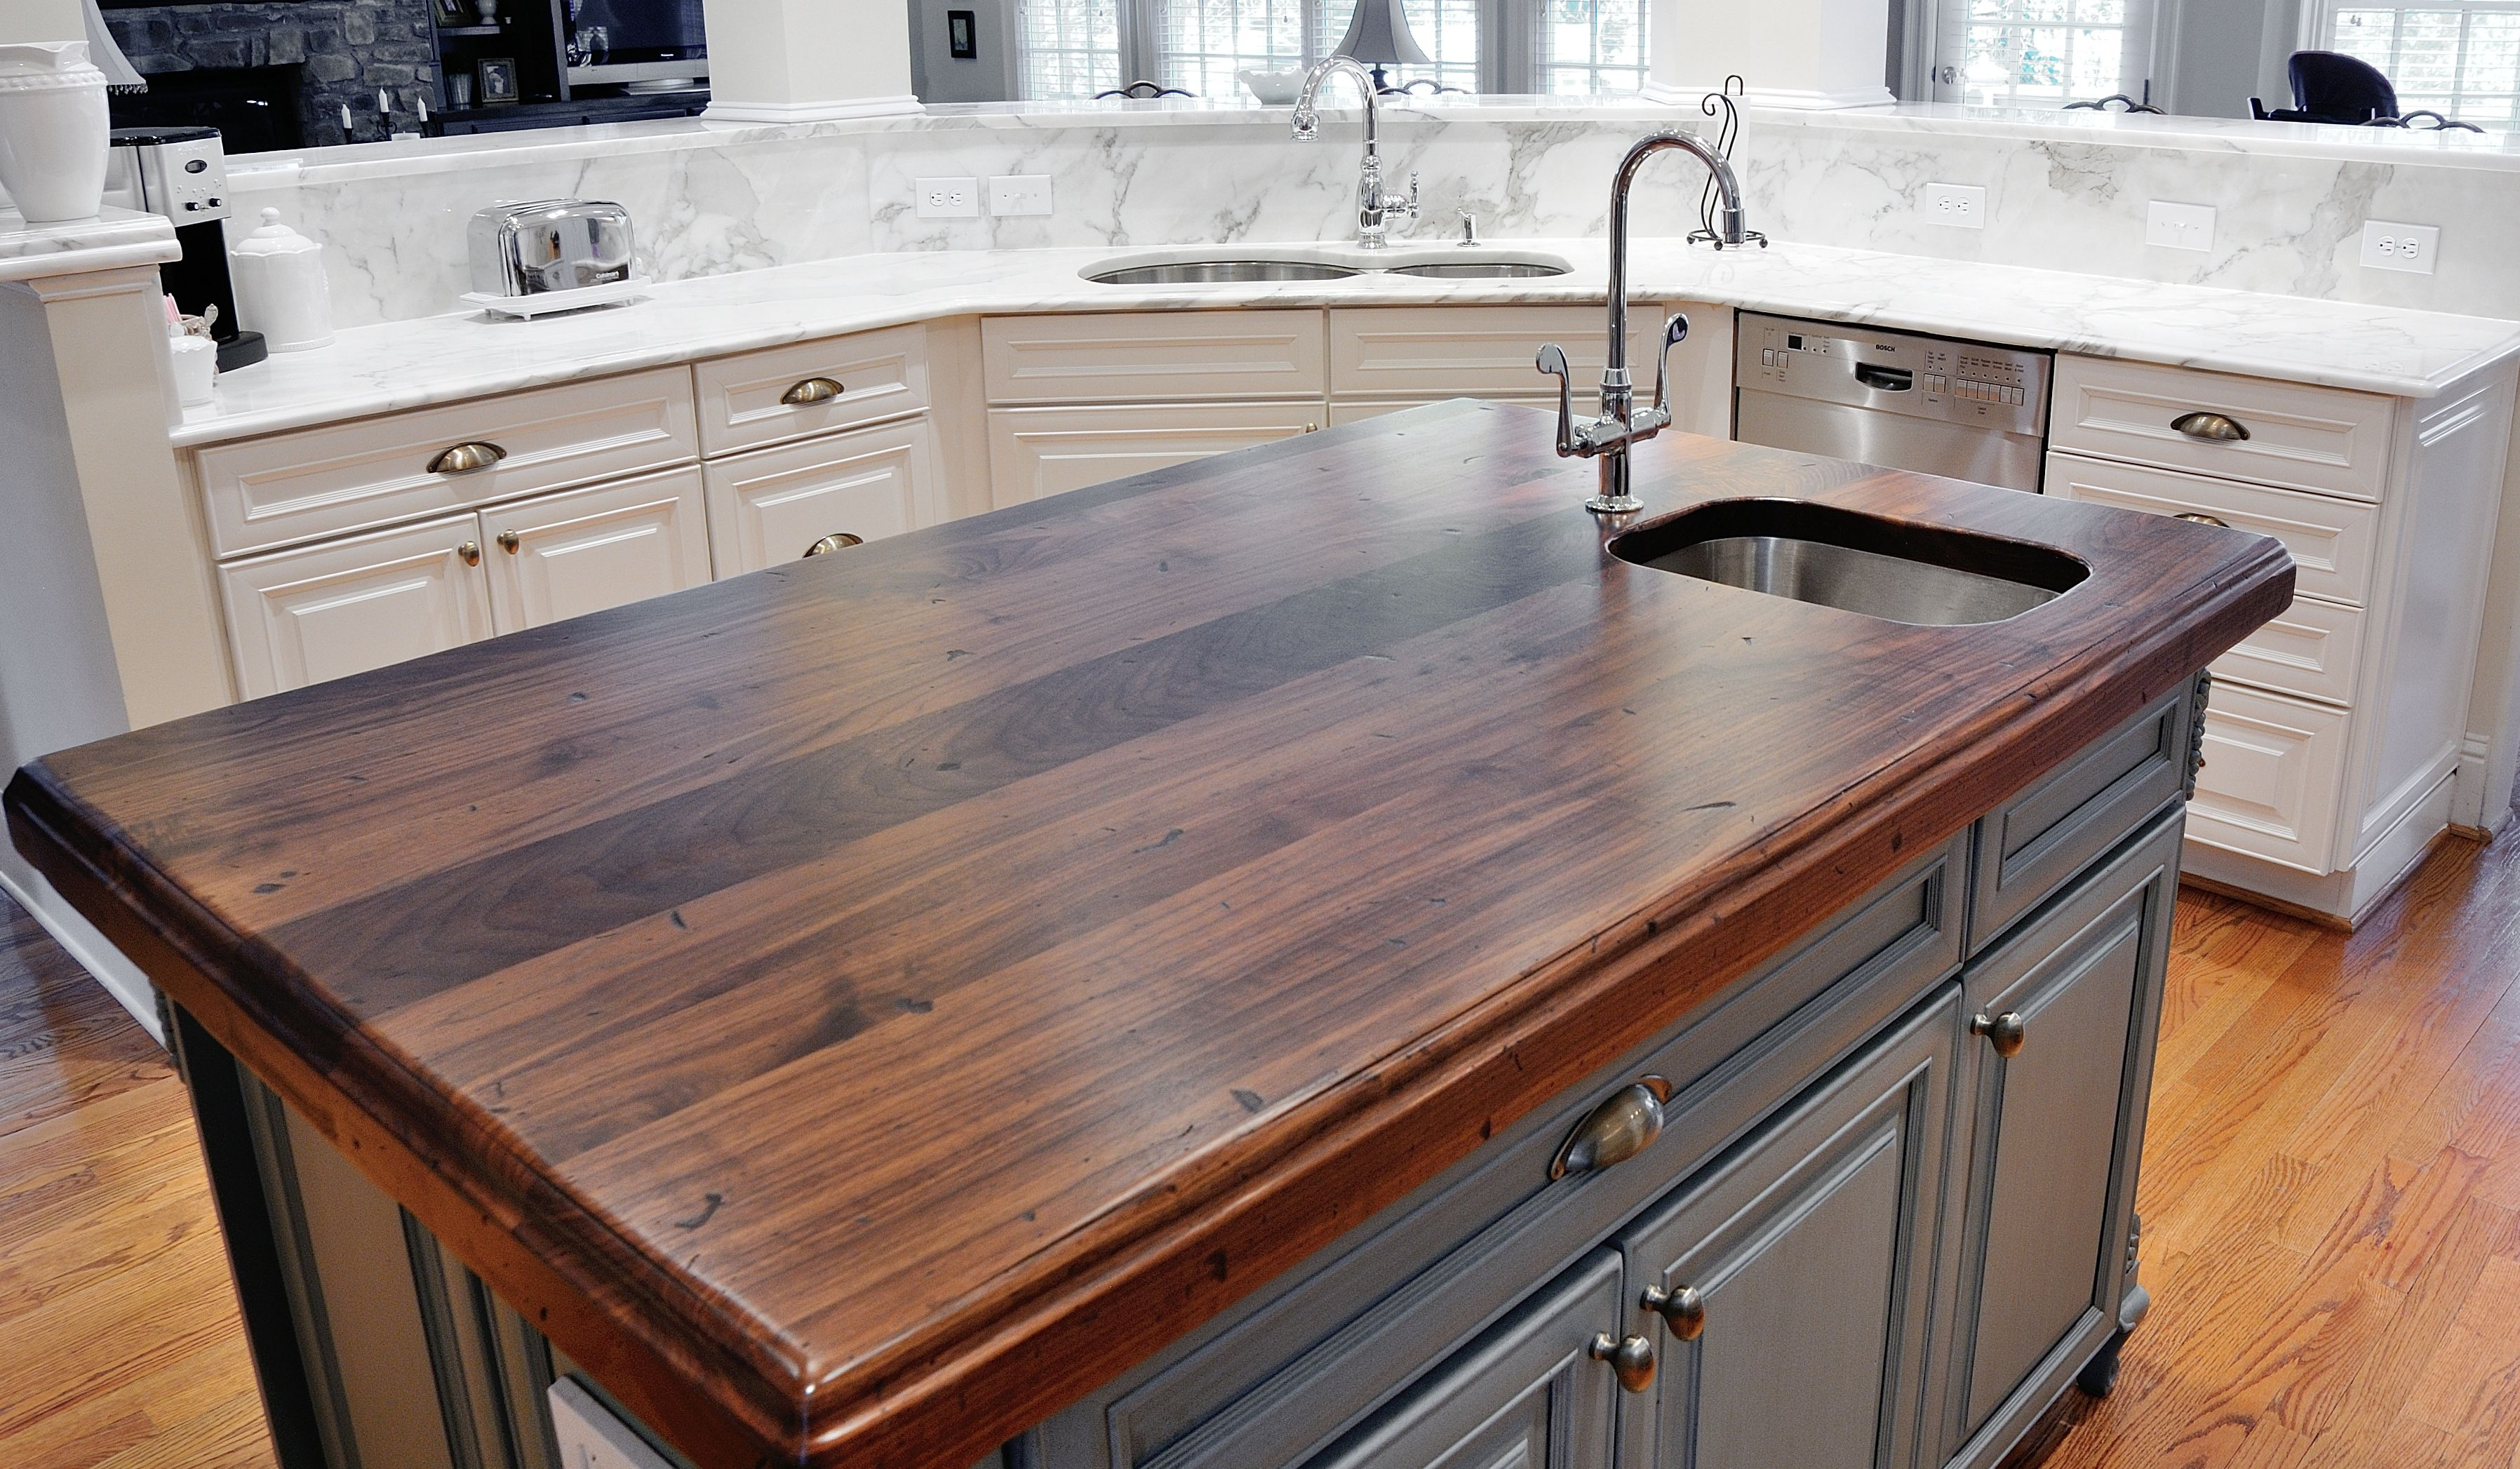 wood countertops atlanta wooden kitchen countertops 17 Best Images About Black Walnut By Craft Art On Pinterest Wood